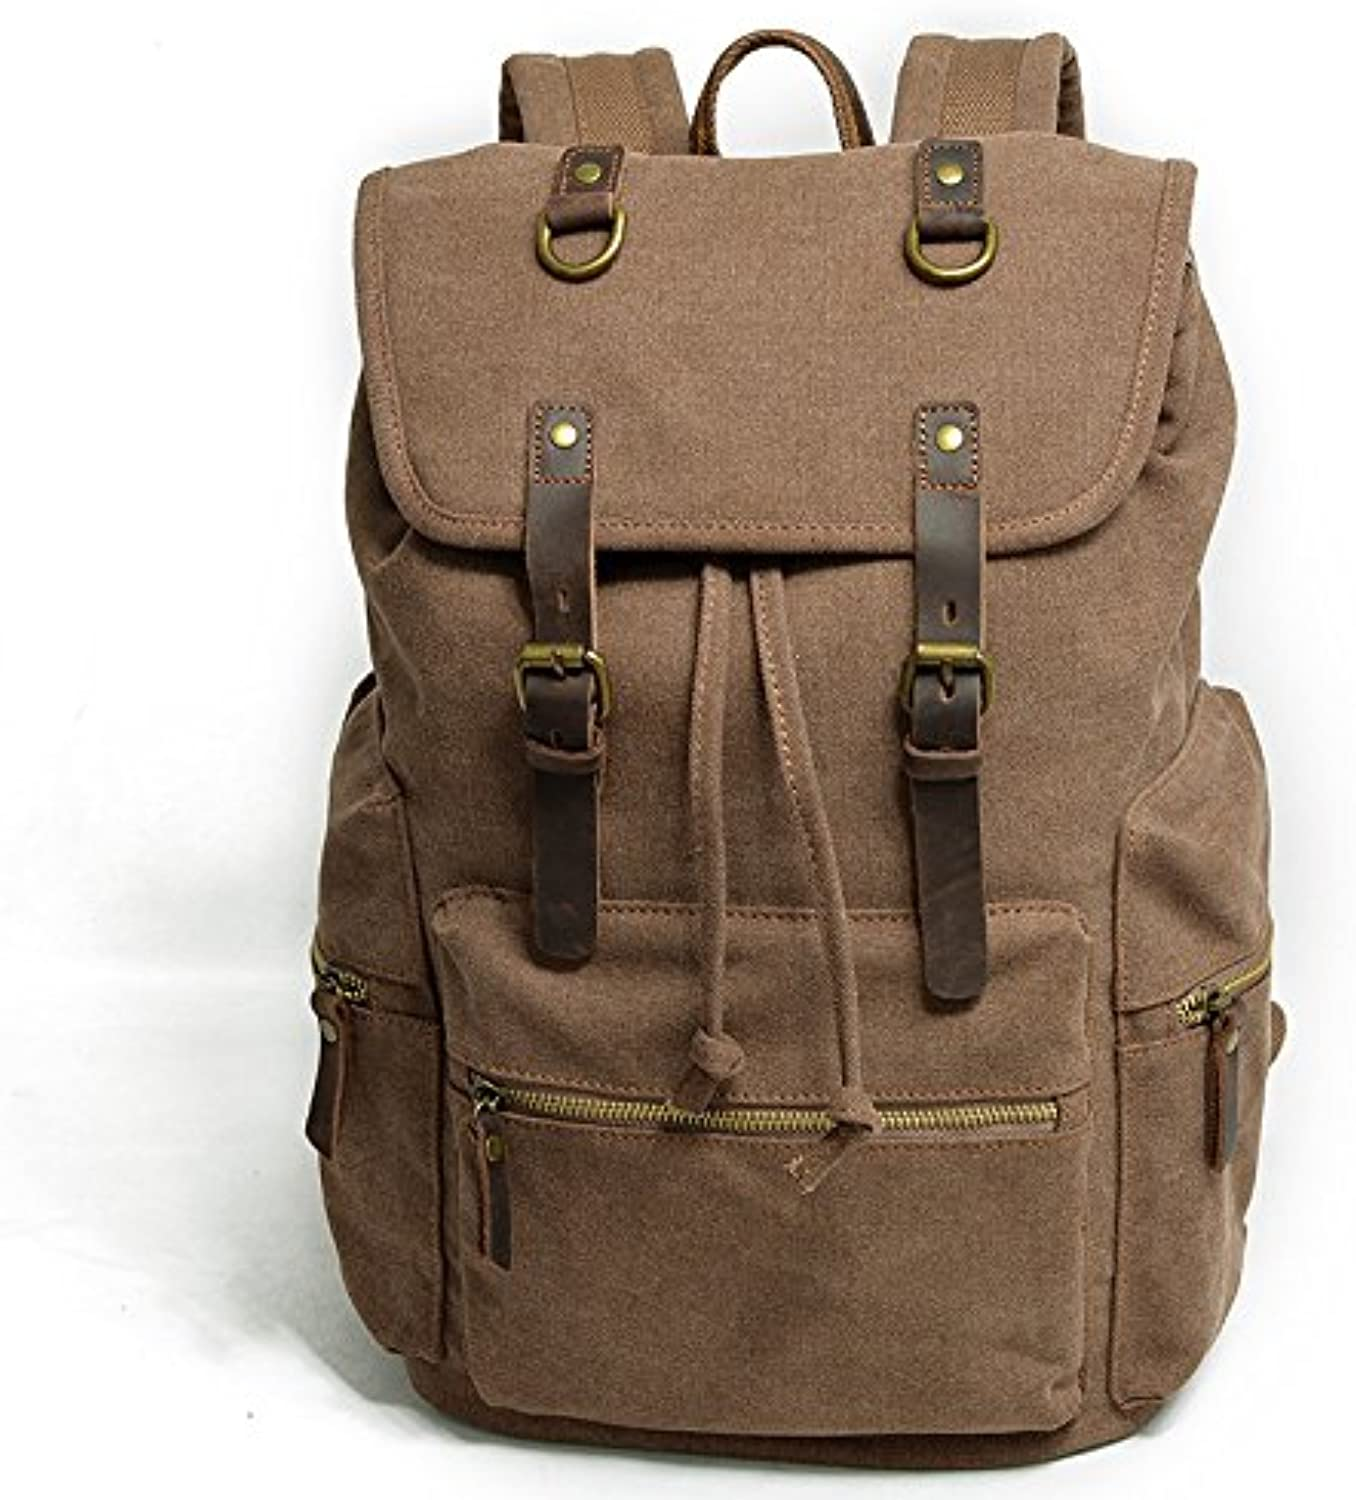 Leisure Shoulder Bag Casual Retro Backpack Bag Fashion Men Bag Oil Wax Soft Canvas Travel Bag 28cm15cm43cm, Brown